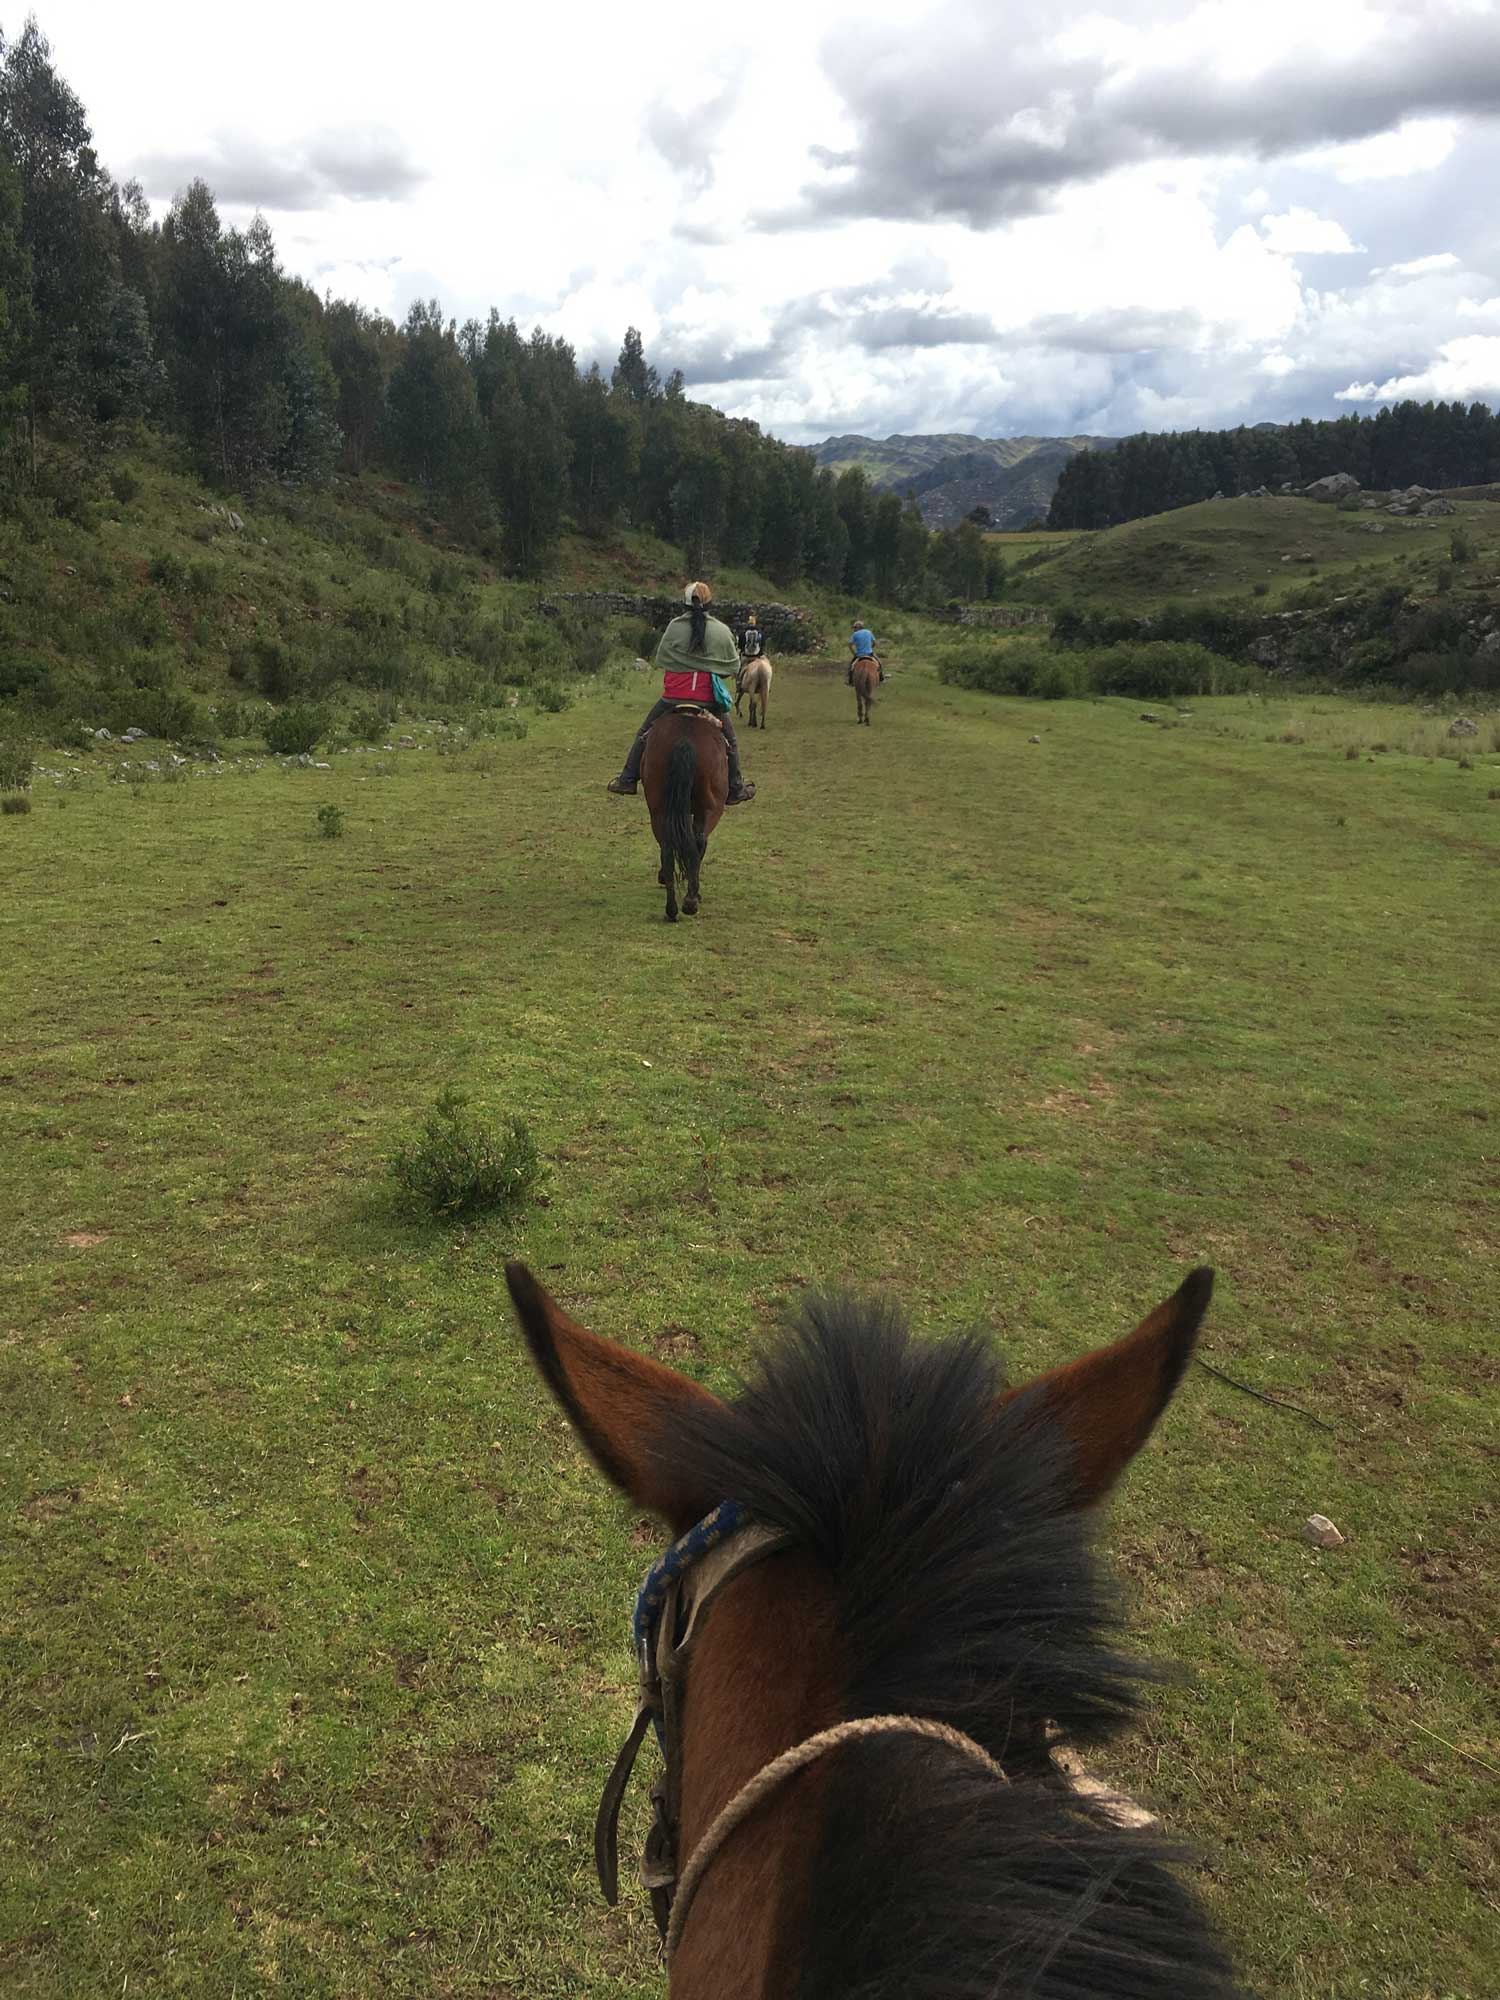 Sacsaywoman-Horse-Ride-Group-Mountain-View.jpg